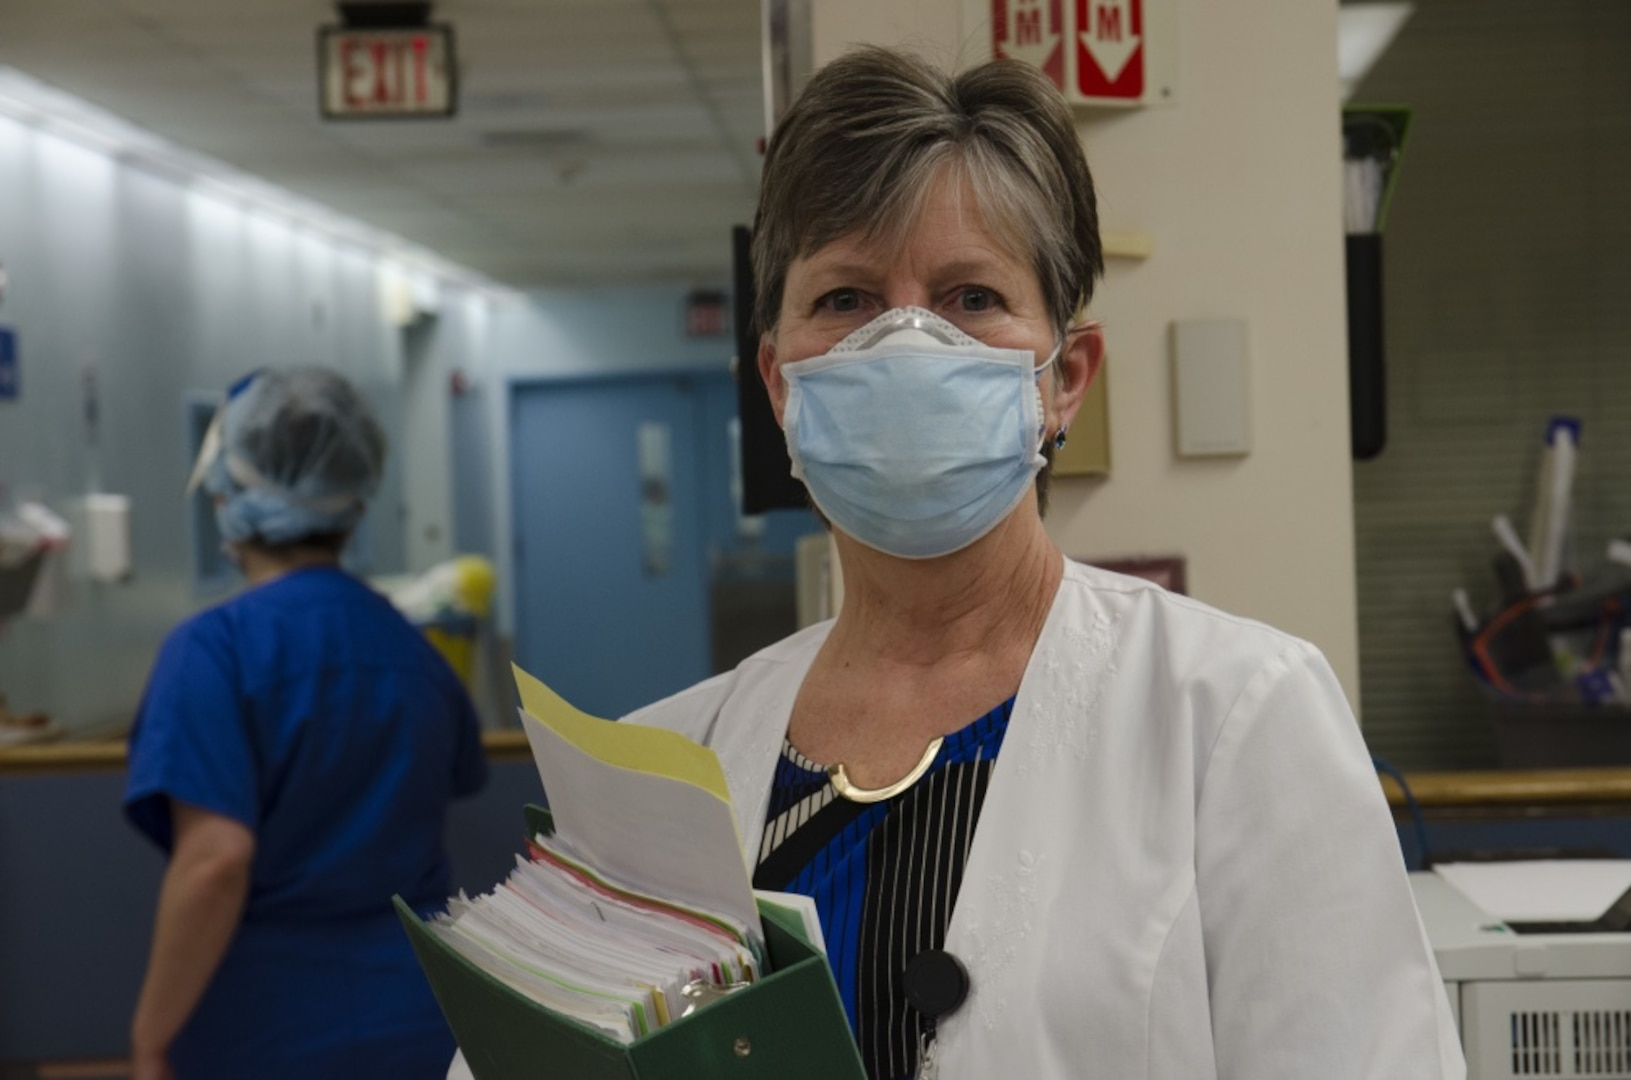 A nurse poses inside a nursing home facility while wearing a white lab coat and a face mask. She is holding a large binder full of folders and papers.